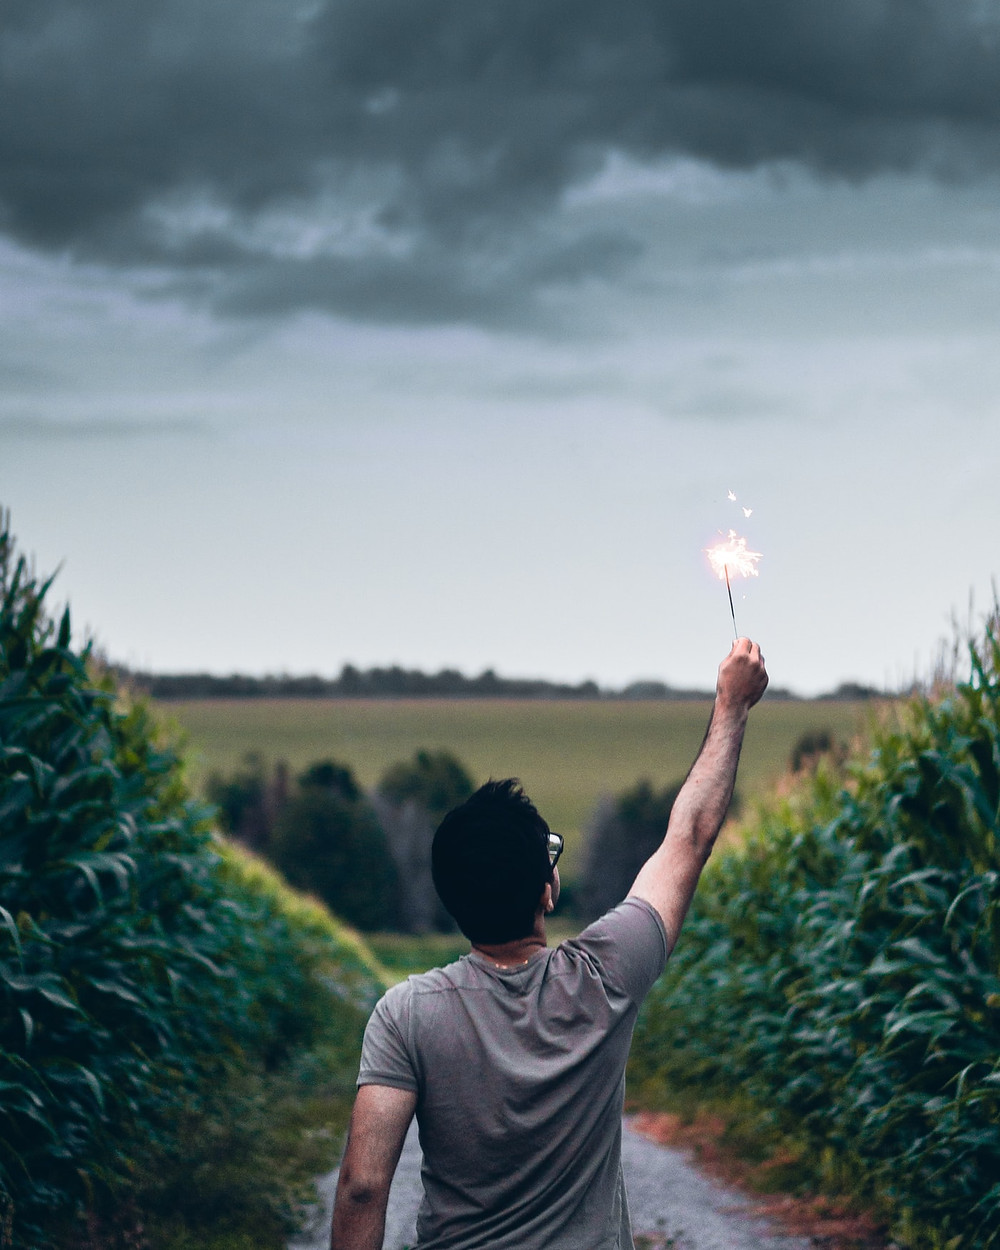 Man With Black Hair And Glasses In Gray T-Shirt Stands With Back To The Camera Between Two Rows Of Tall Corn-Like Plants Holding Up A Sparkler Towards A Stormy Sky How To Heal Childhood Trauma And Live Your Dreams Relationship Break-Up Self Improvement Lifestyle Advice Blog Fabsolutely Co